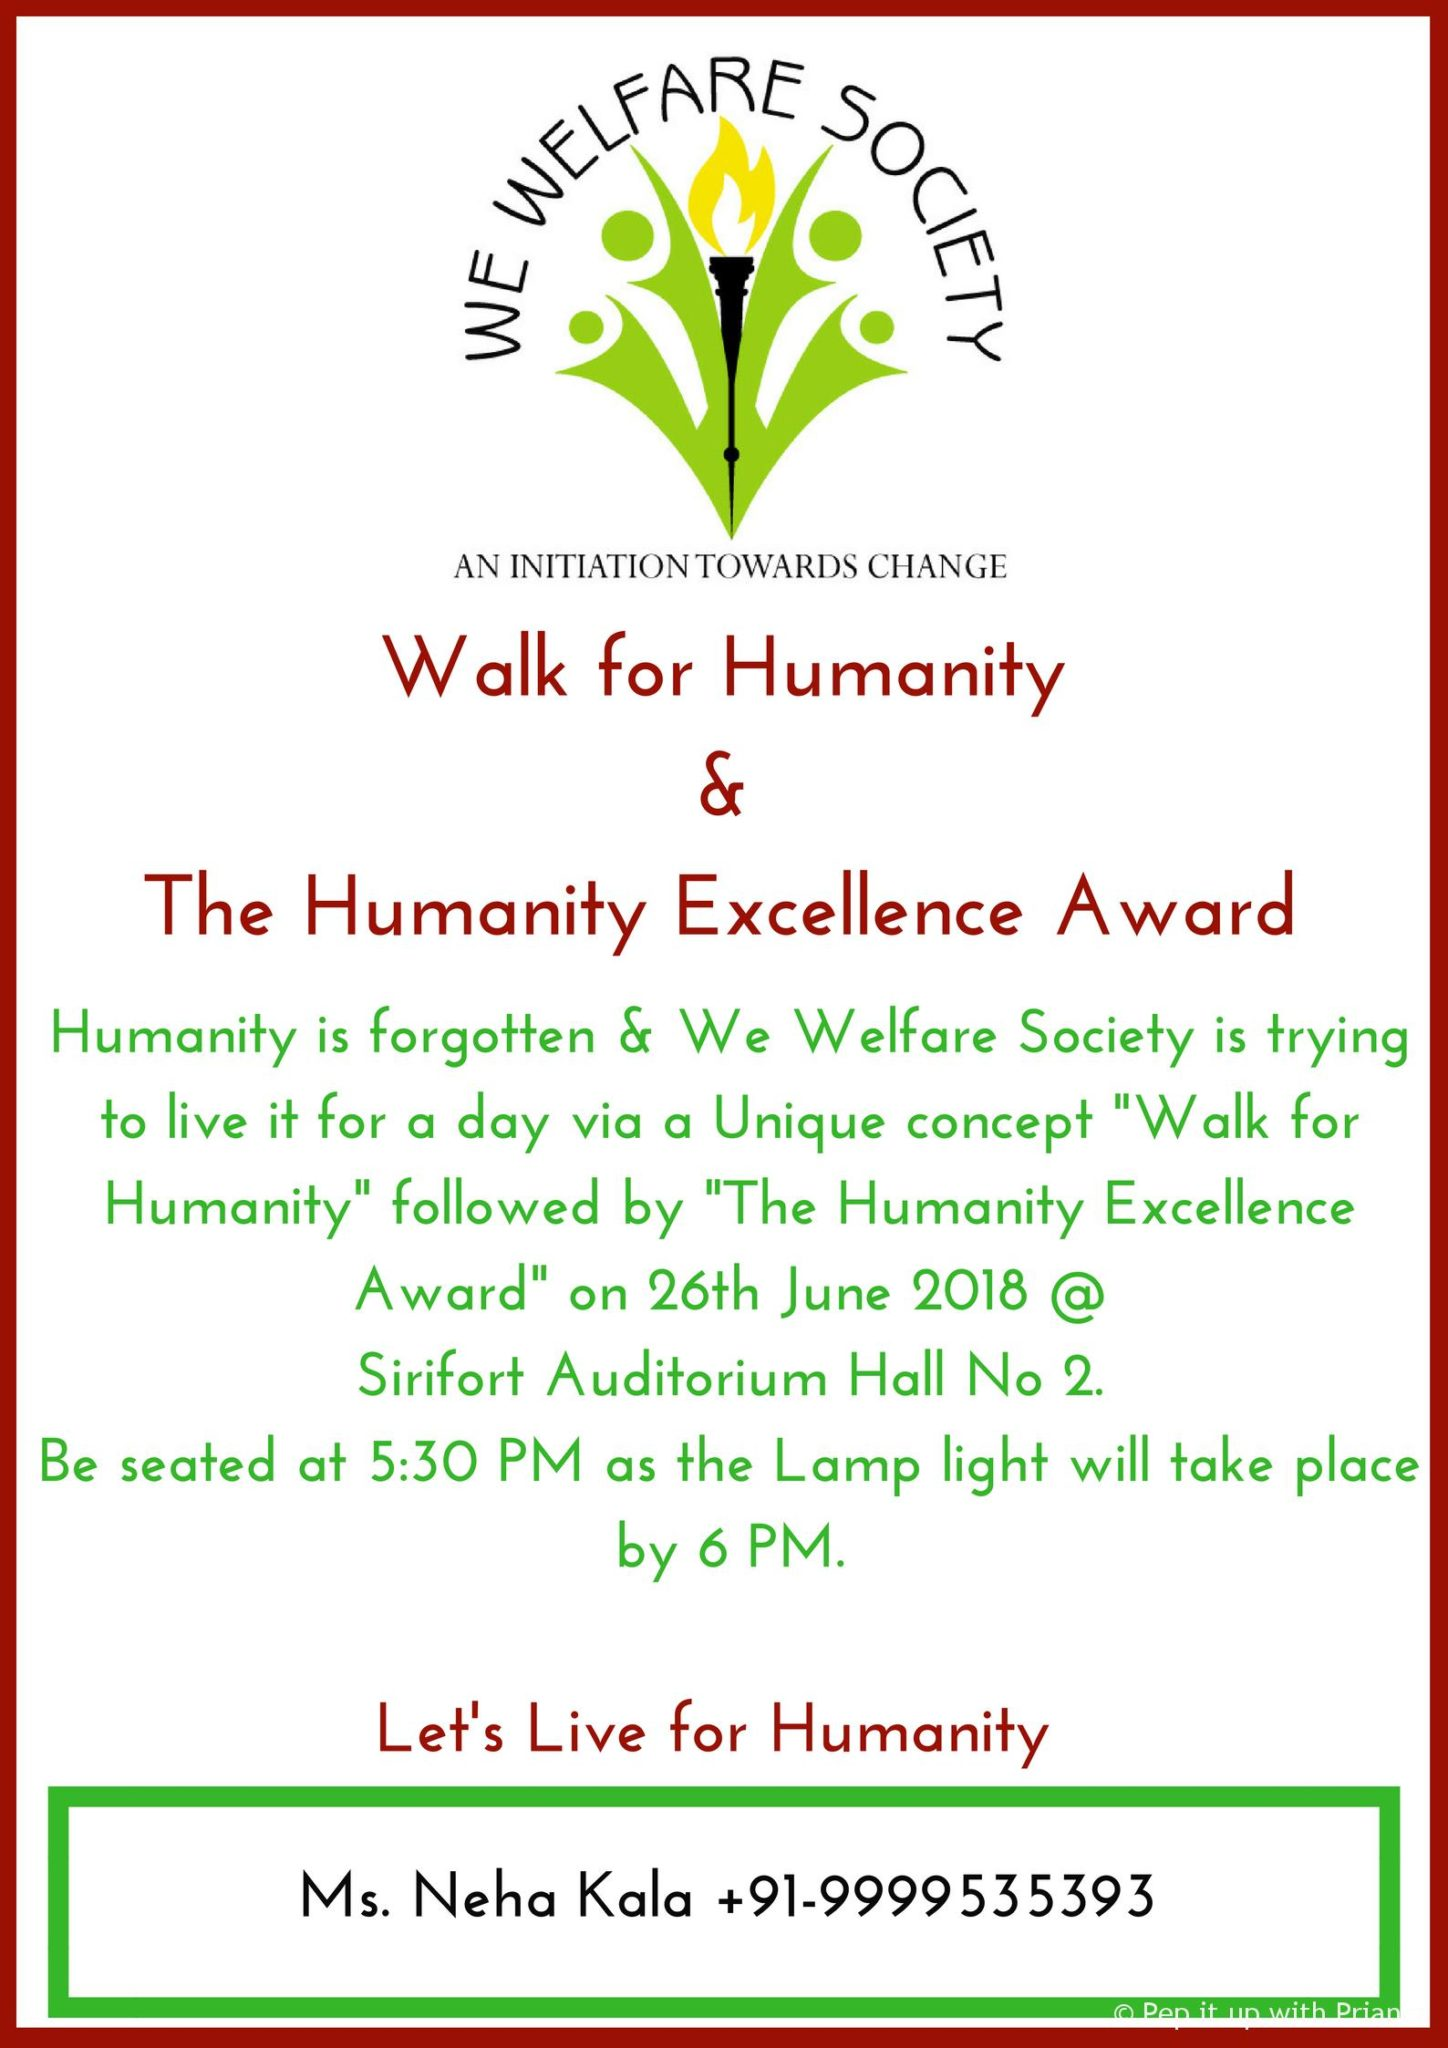 Second Album Launch 3 - We Welfare Society Presents Humanity Excellence Awards & Walk for Humanity by Ms. Neha Kala